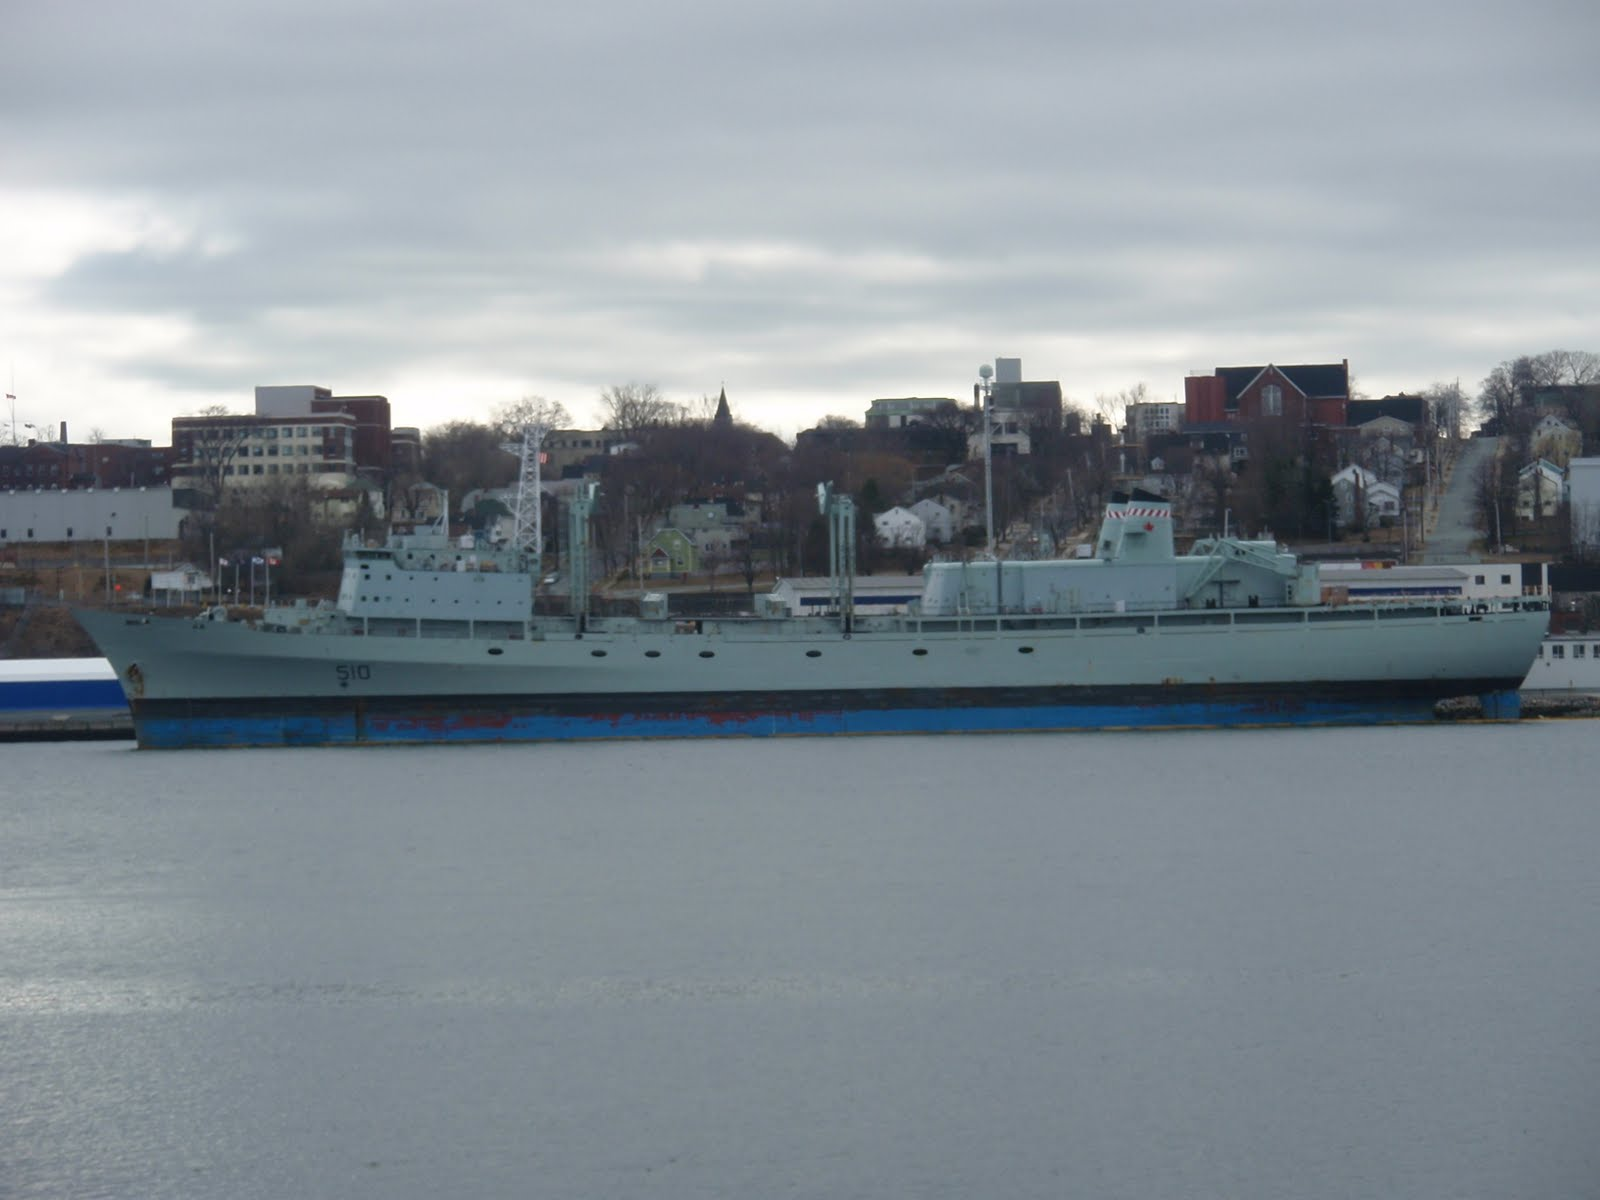 HMCS Preserver Also tied up at Halifax Shipyards Machine Shop Warf for 1600x1200